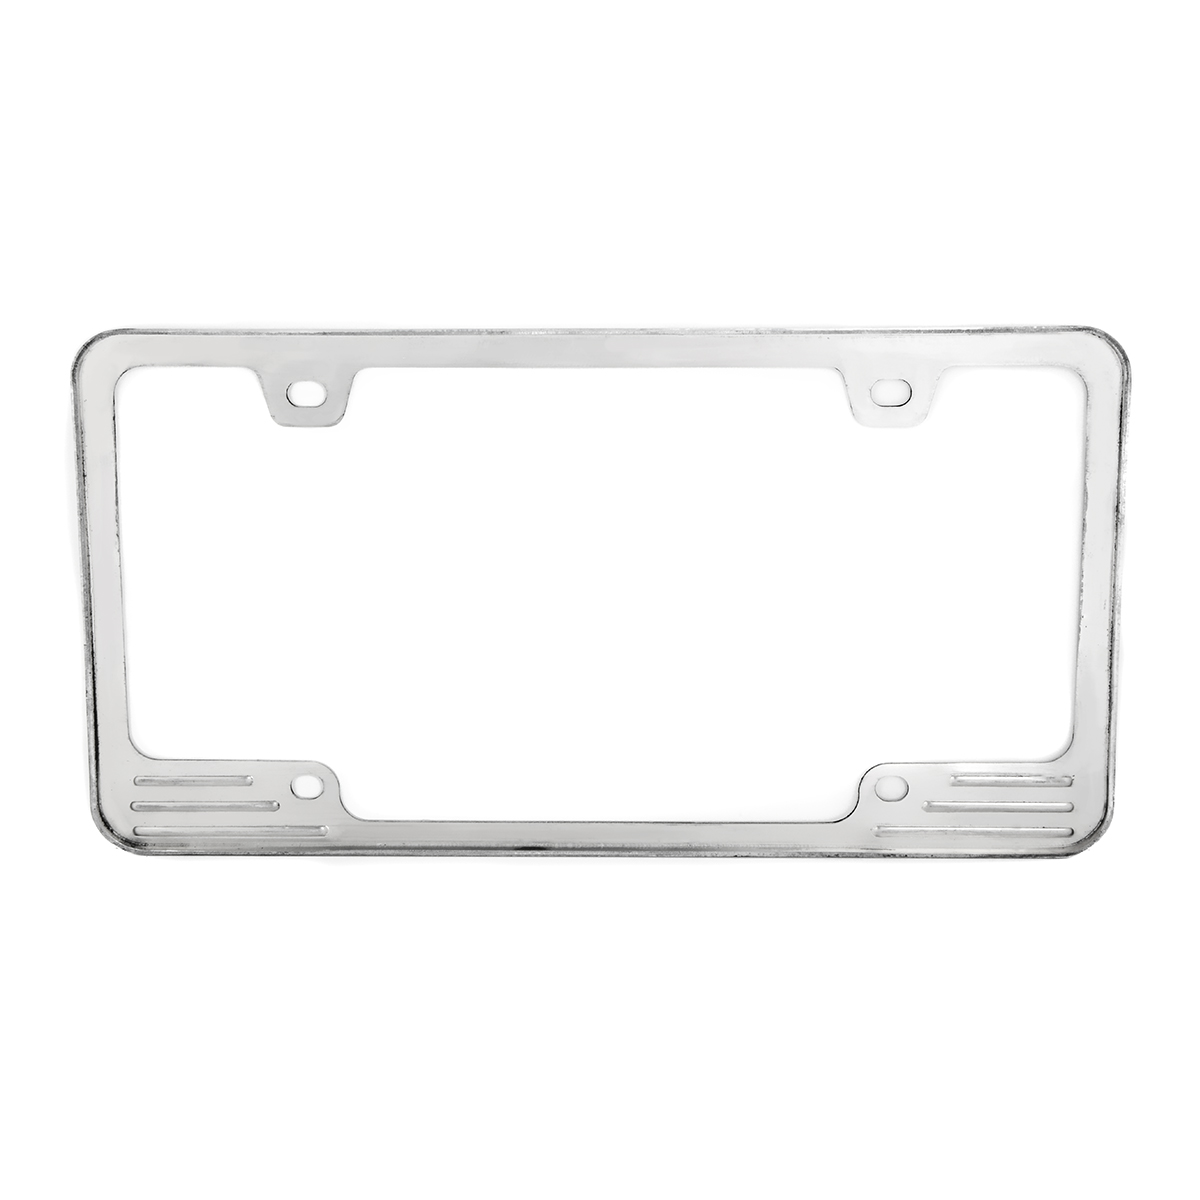 60470 Aluminum License Plate Frame with 4 Holes - Back View